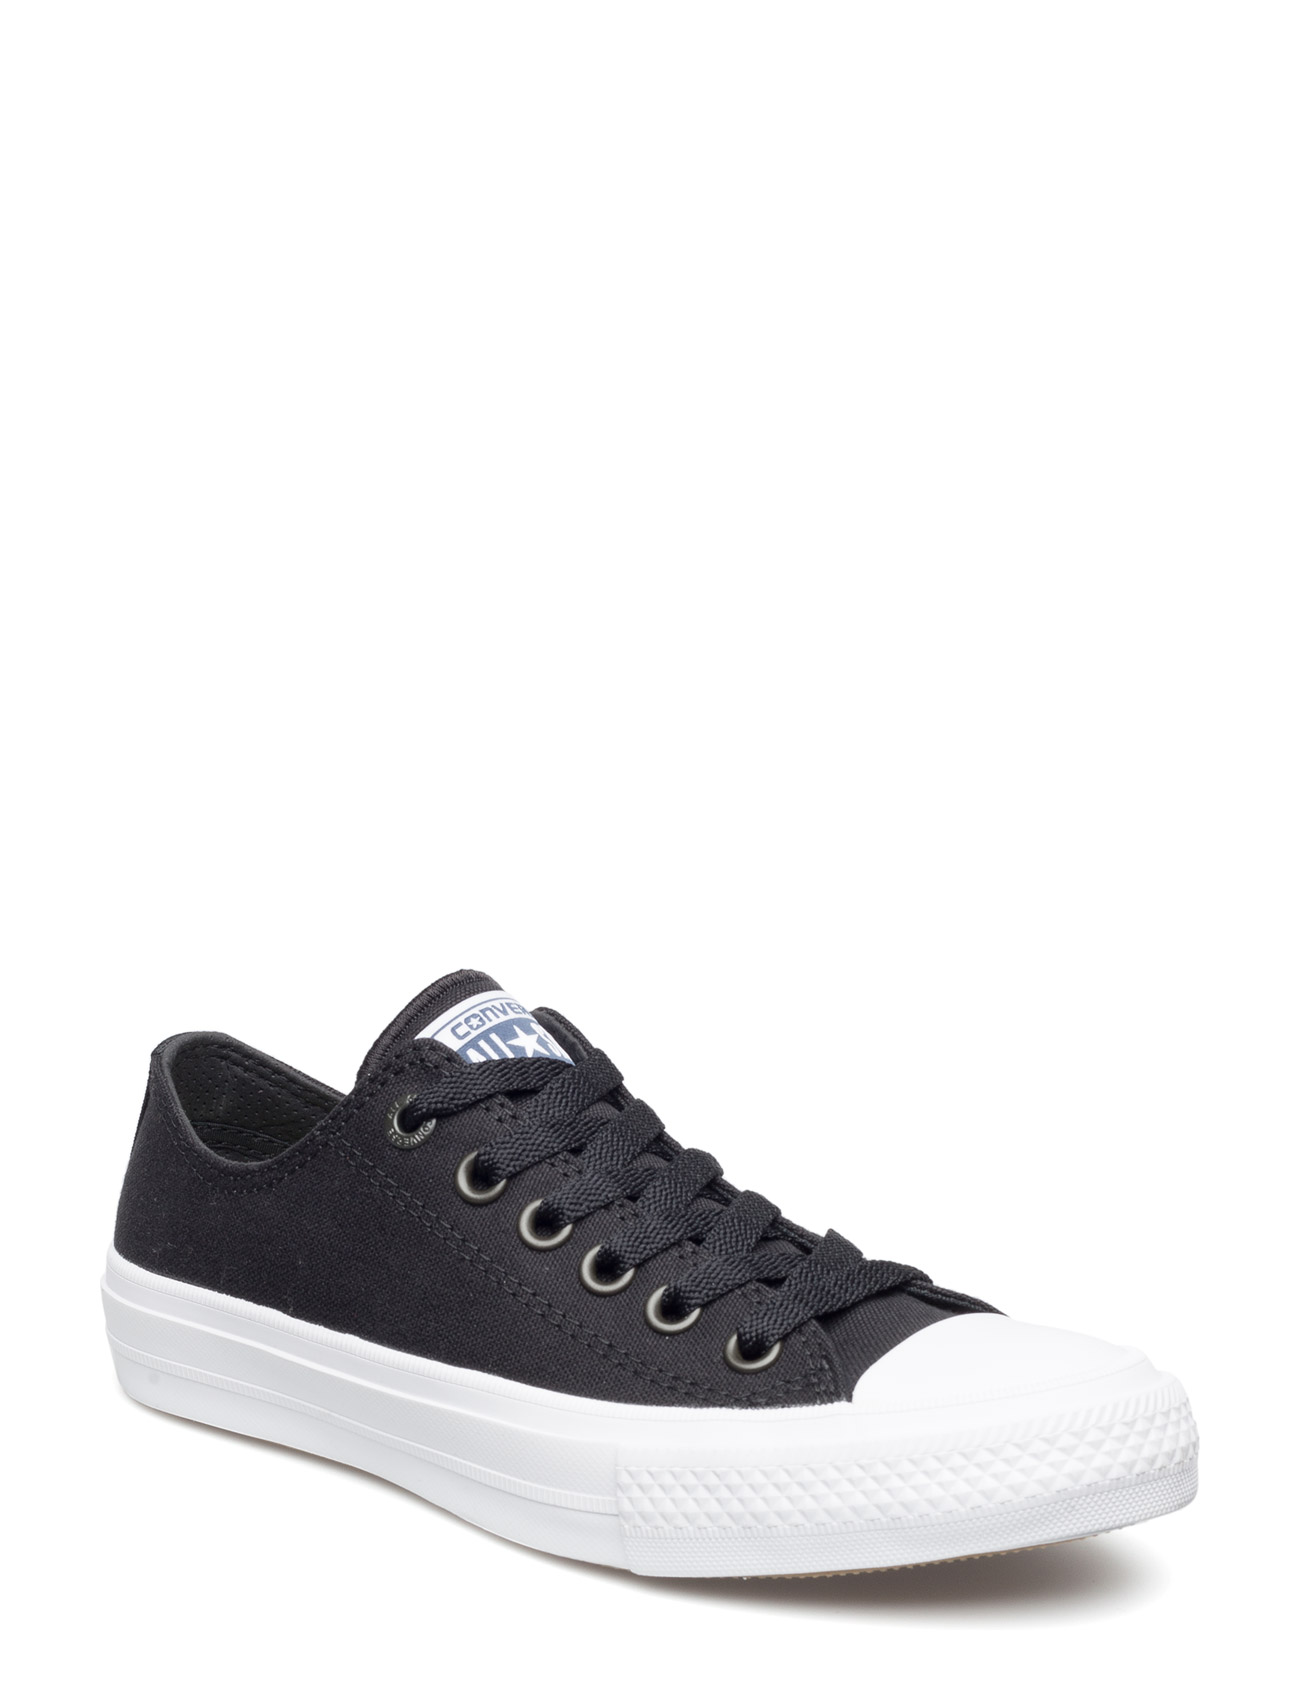 Ct Ii Ox Black/White/Navy